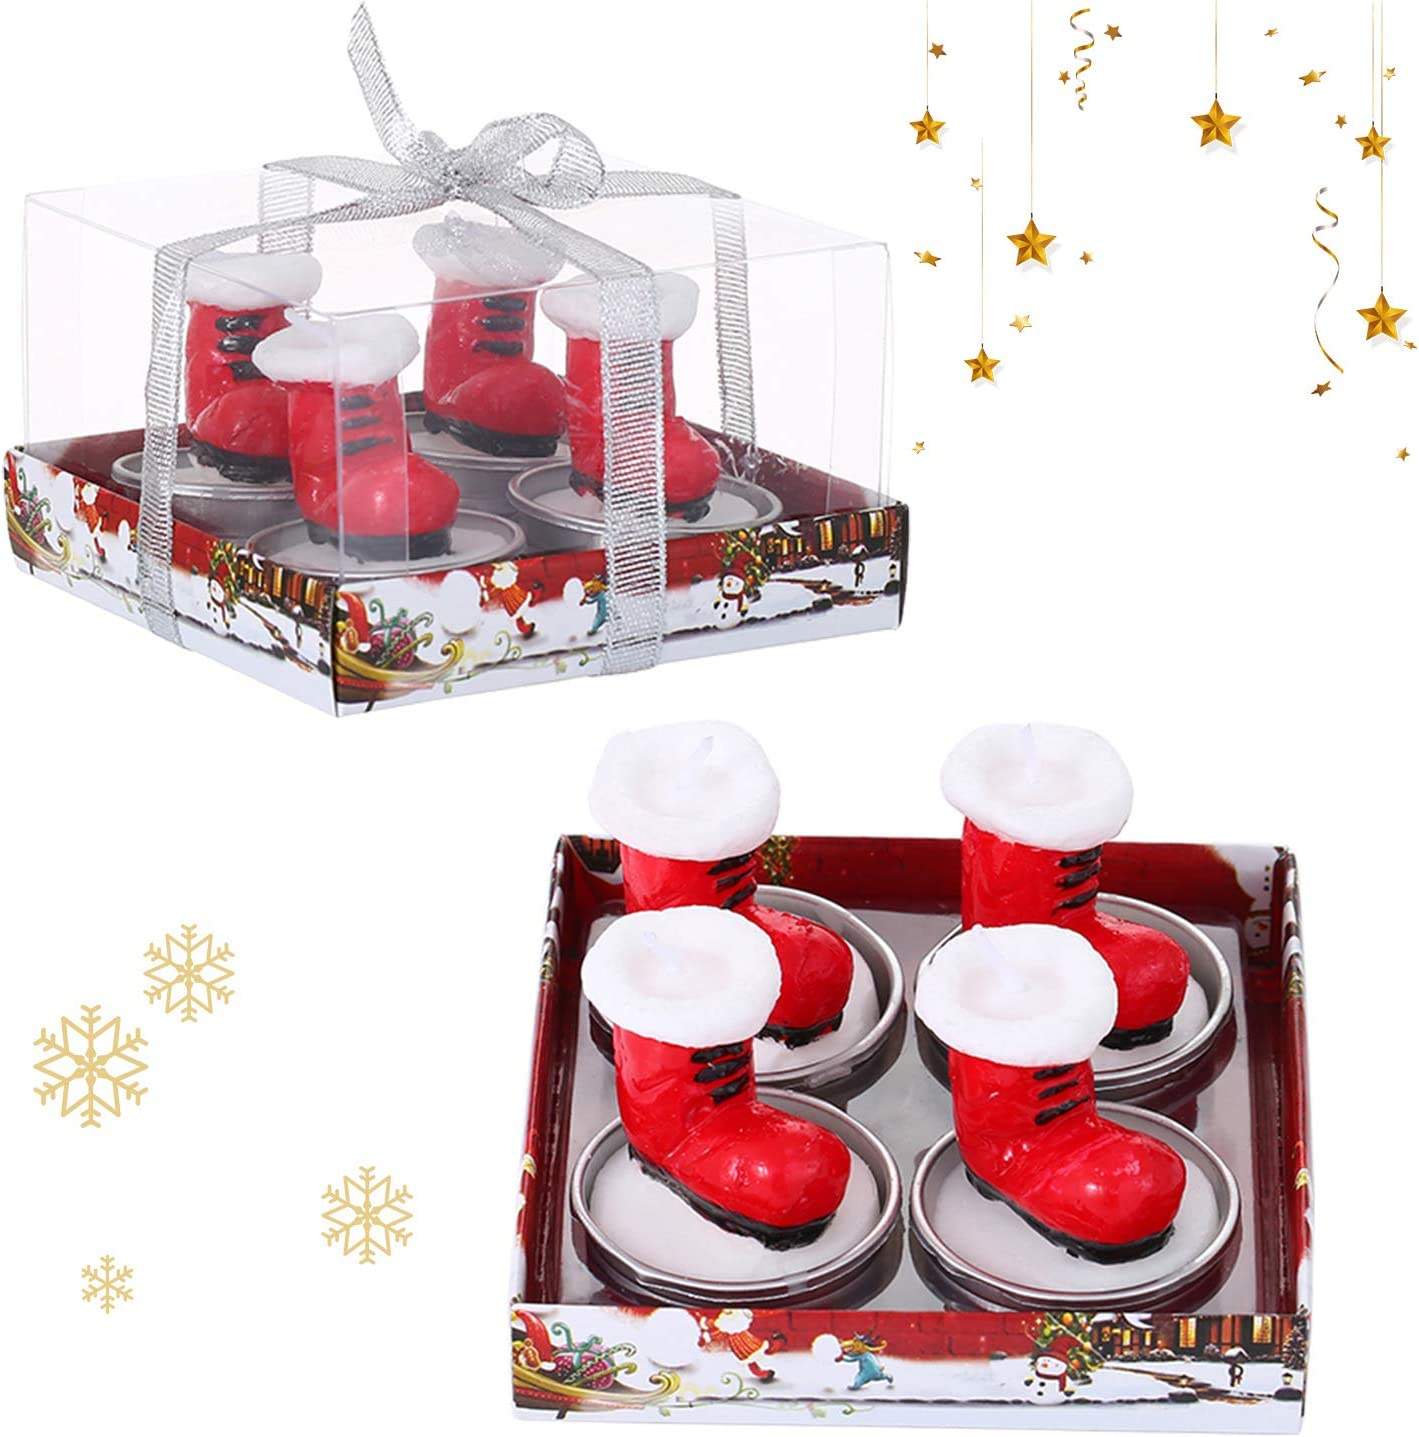 SIXPEN Christmas Tea Lights Candles for Birthday Home Party Wedding Holiday Celebration Decoration Christmas Ornaments(Boot): Home & Kitchen